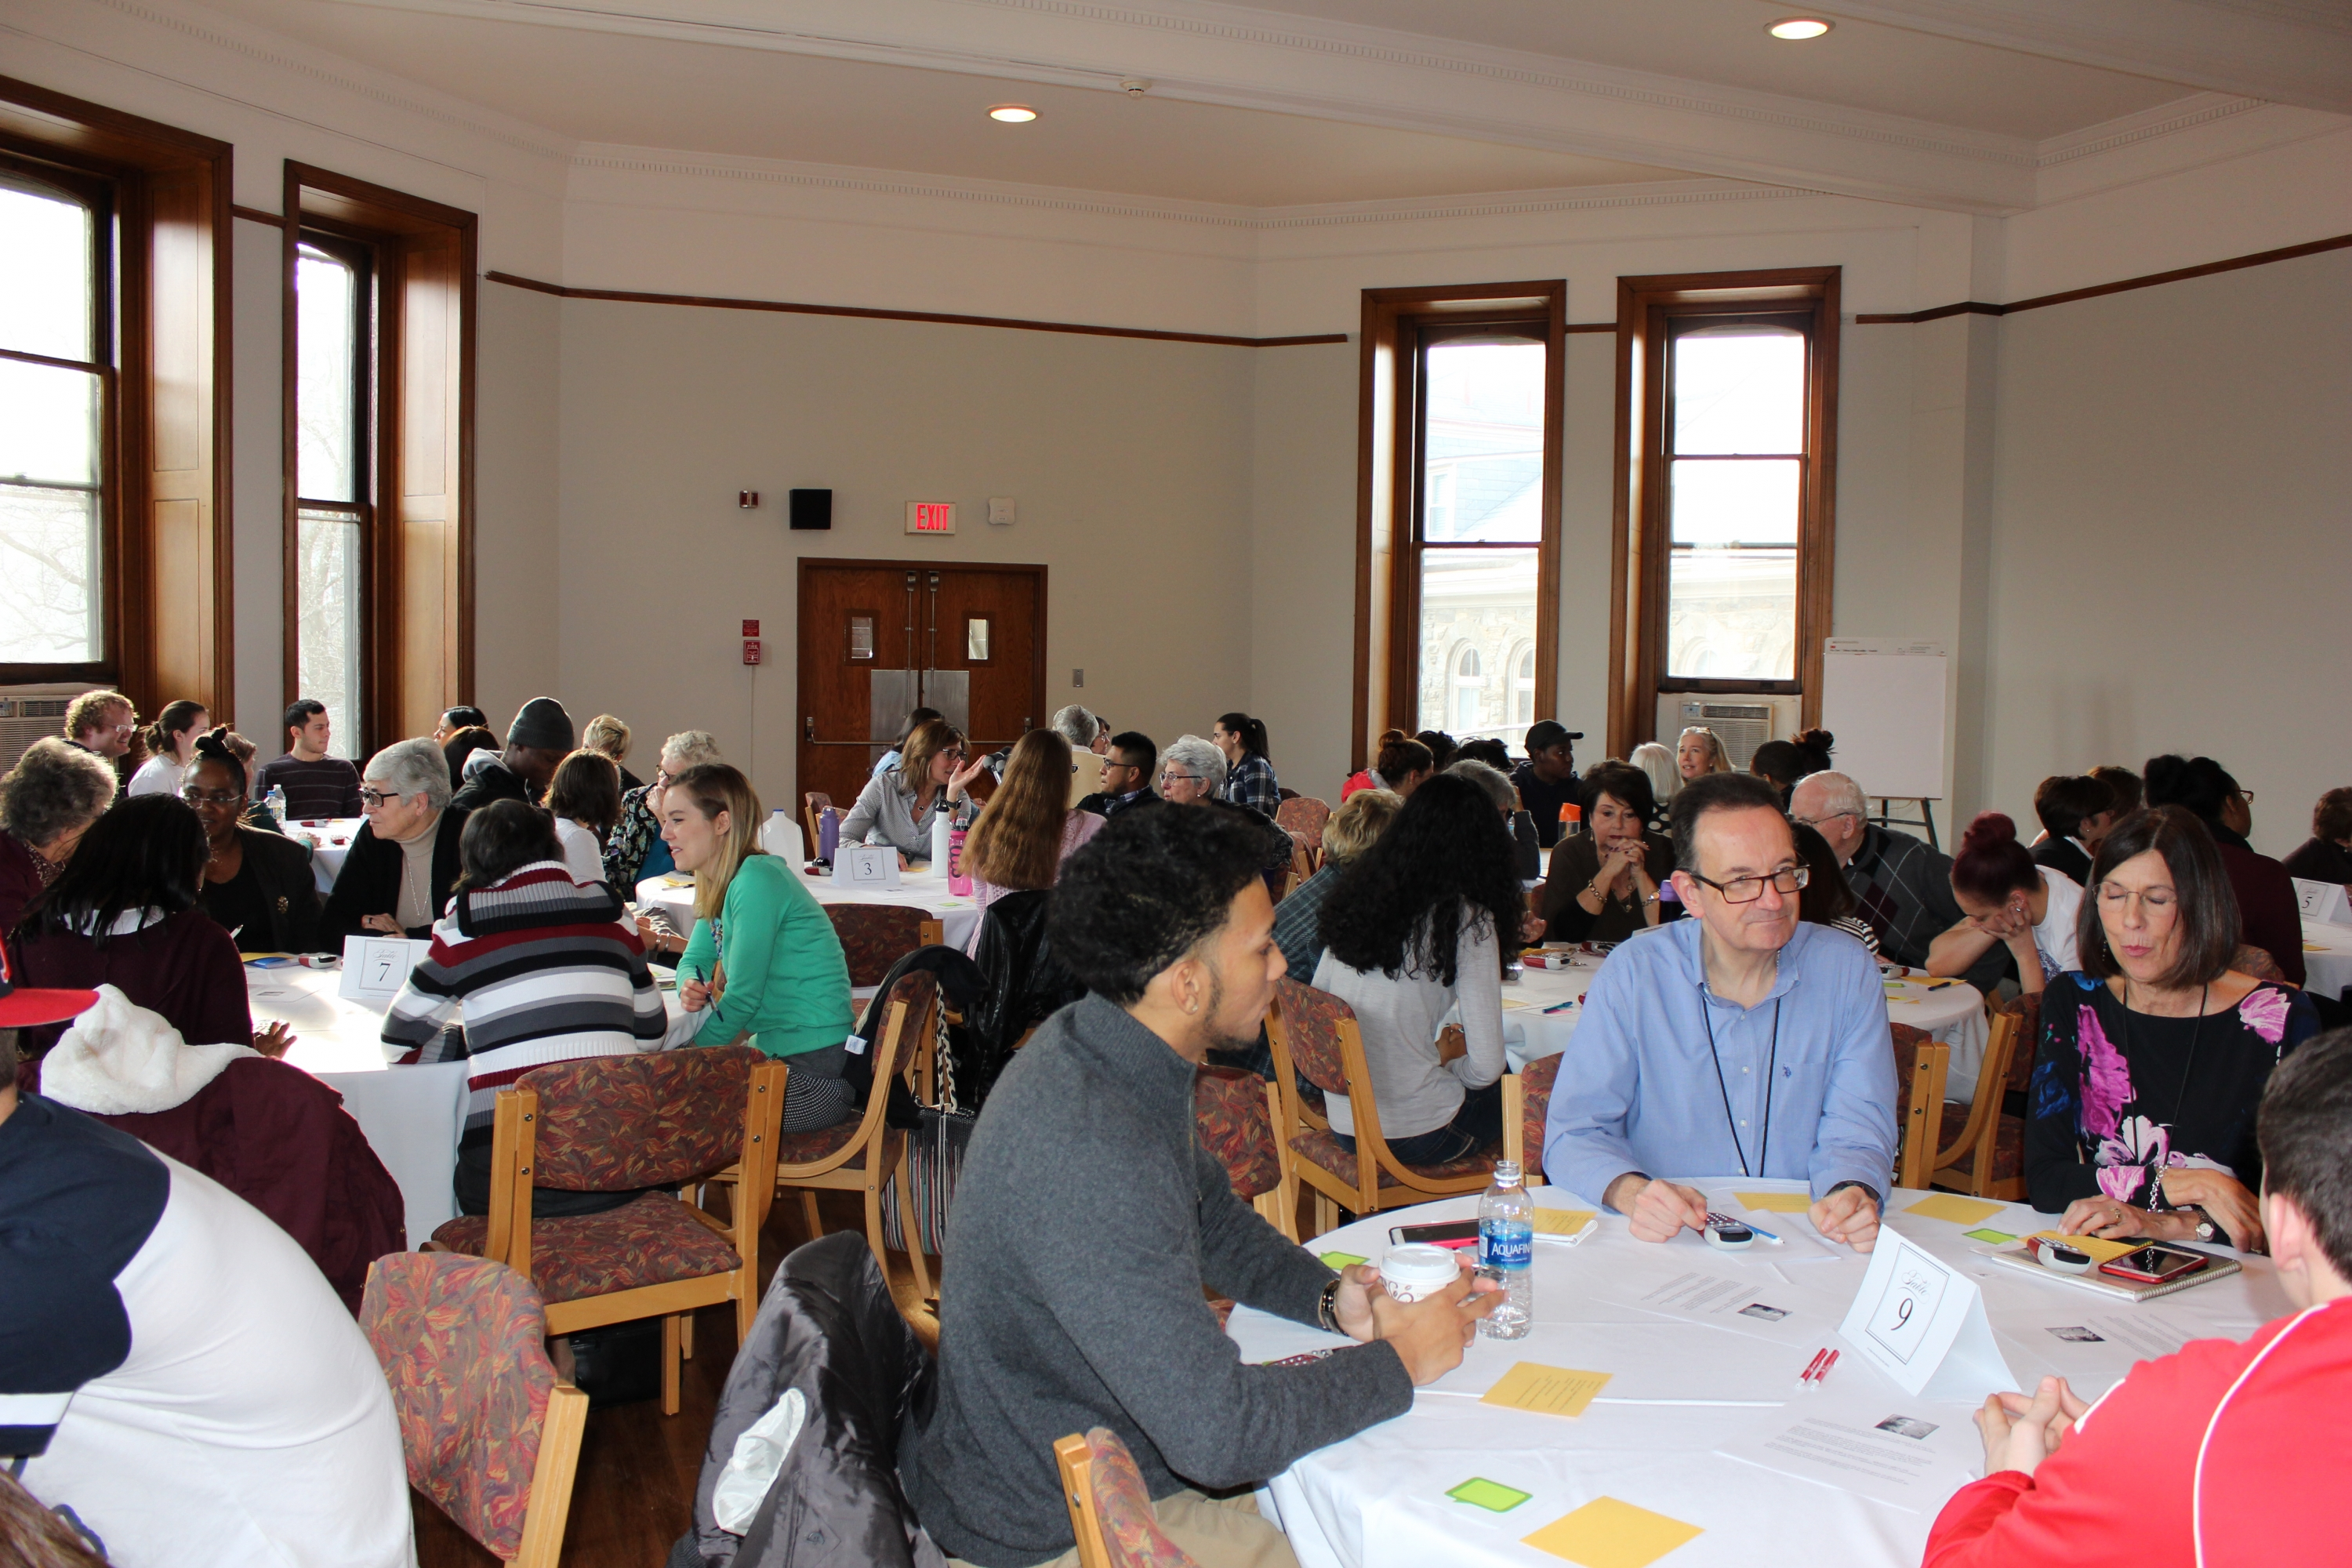 Members of the College community engage in table discussion and shared insights during the MLK Day of Remembrance.